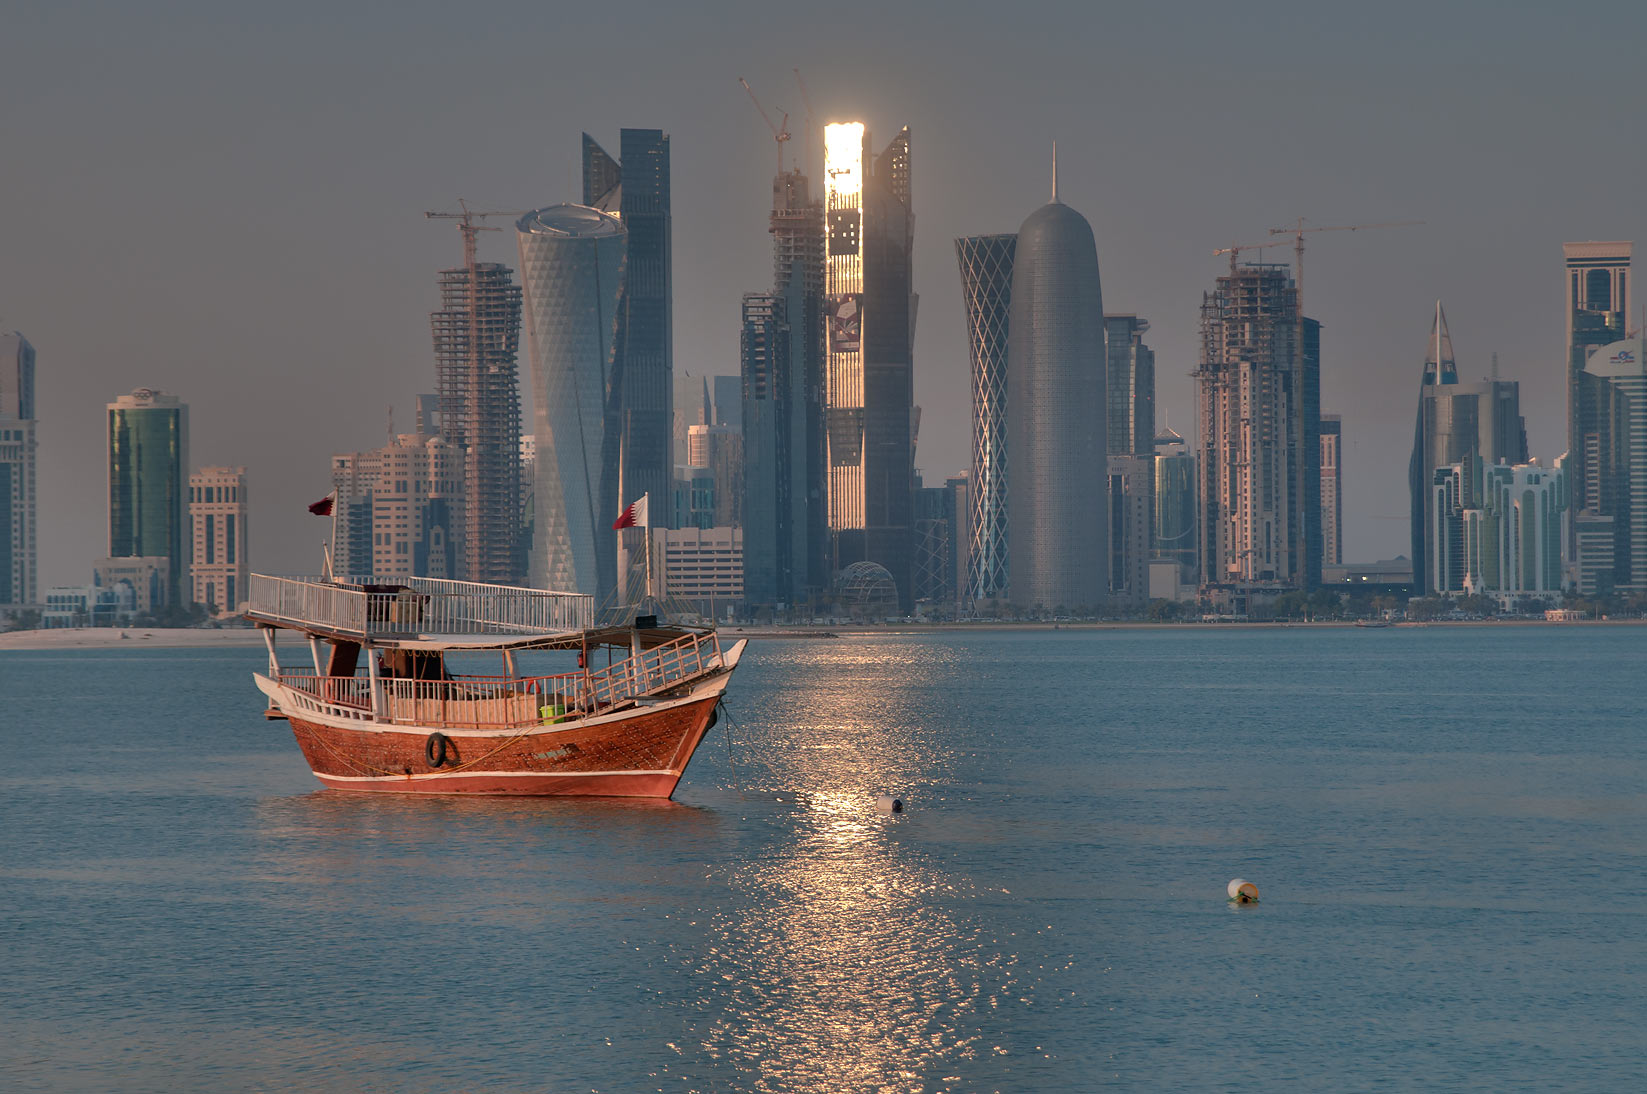 Dhow boat and West Bay, view from Corniche near Corniche Round About. Doha, Qatar